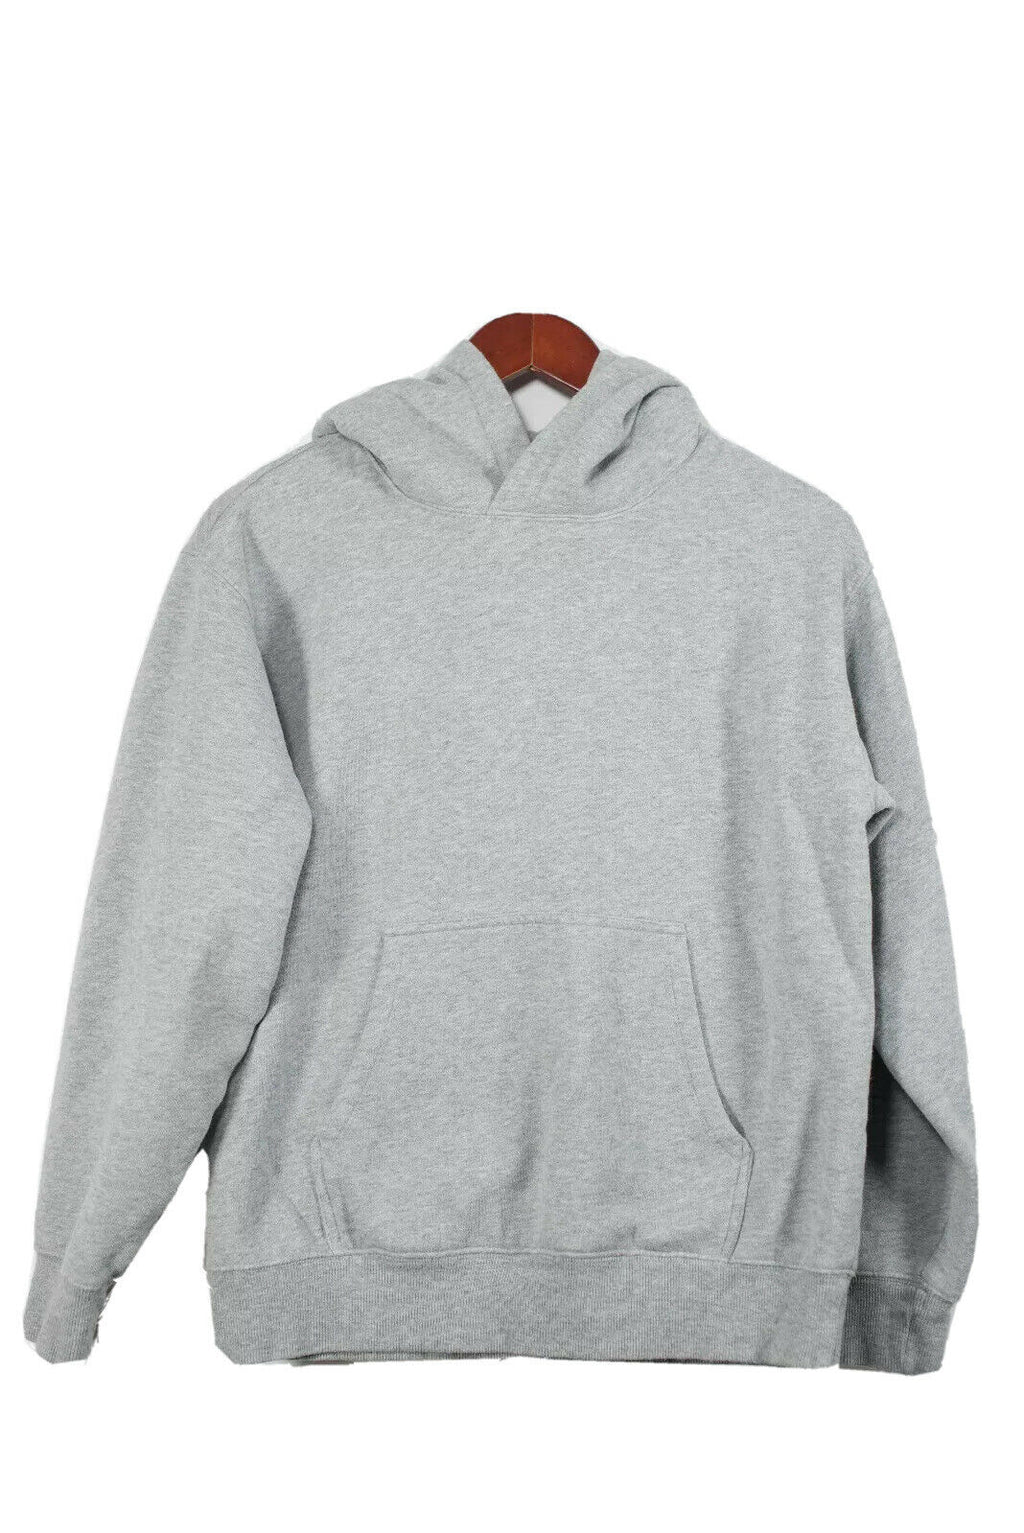 TNA Aritzia Size Small Grey Perfect Hoodie Sweater